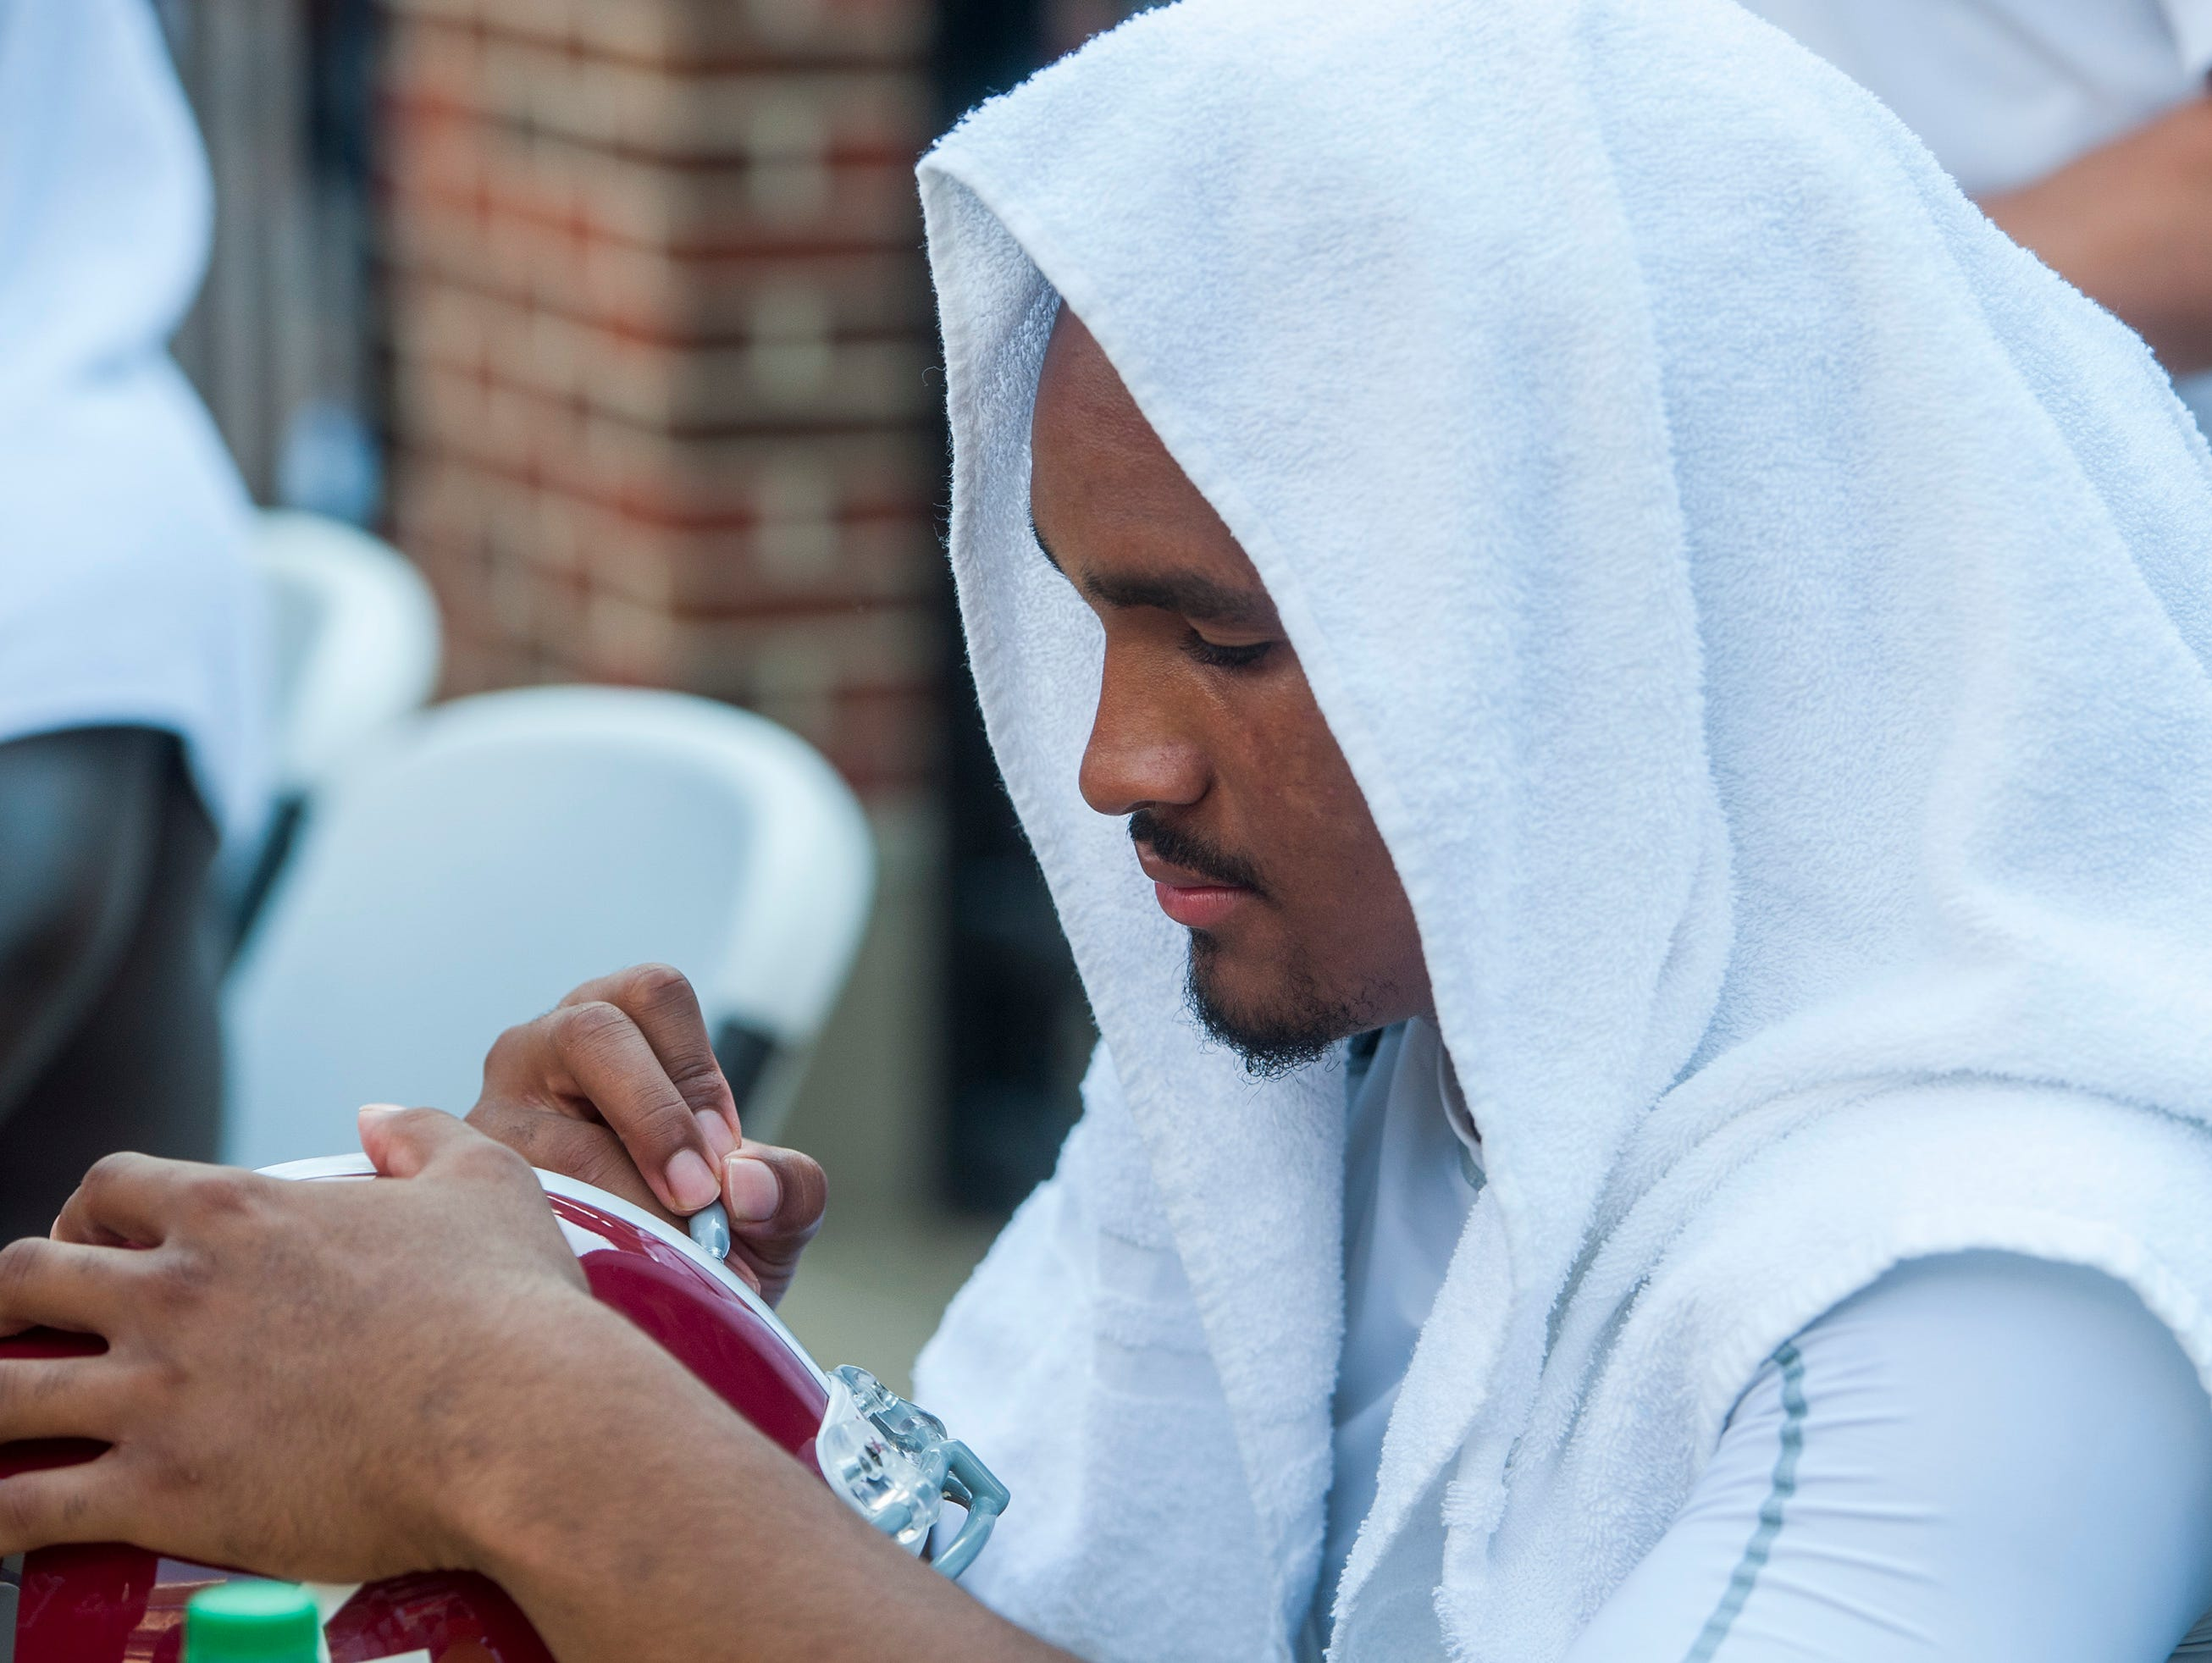 Alabama quarterback Jalen Hurts (2) signs autographs during fan day in Tuscaloosa, Ala. on Saturday August 5, 2017.